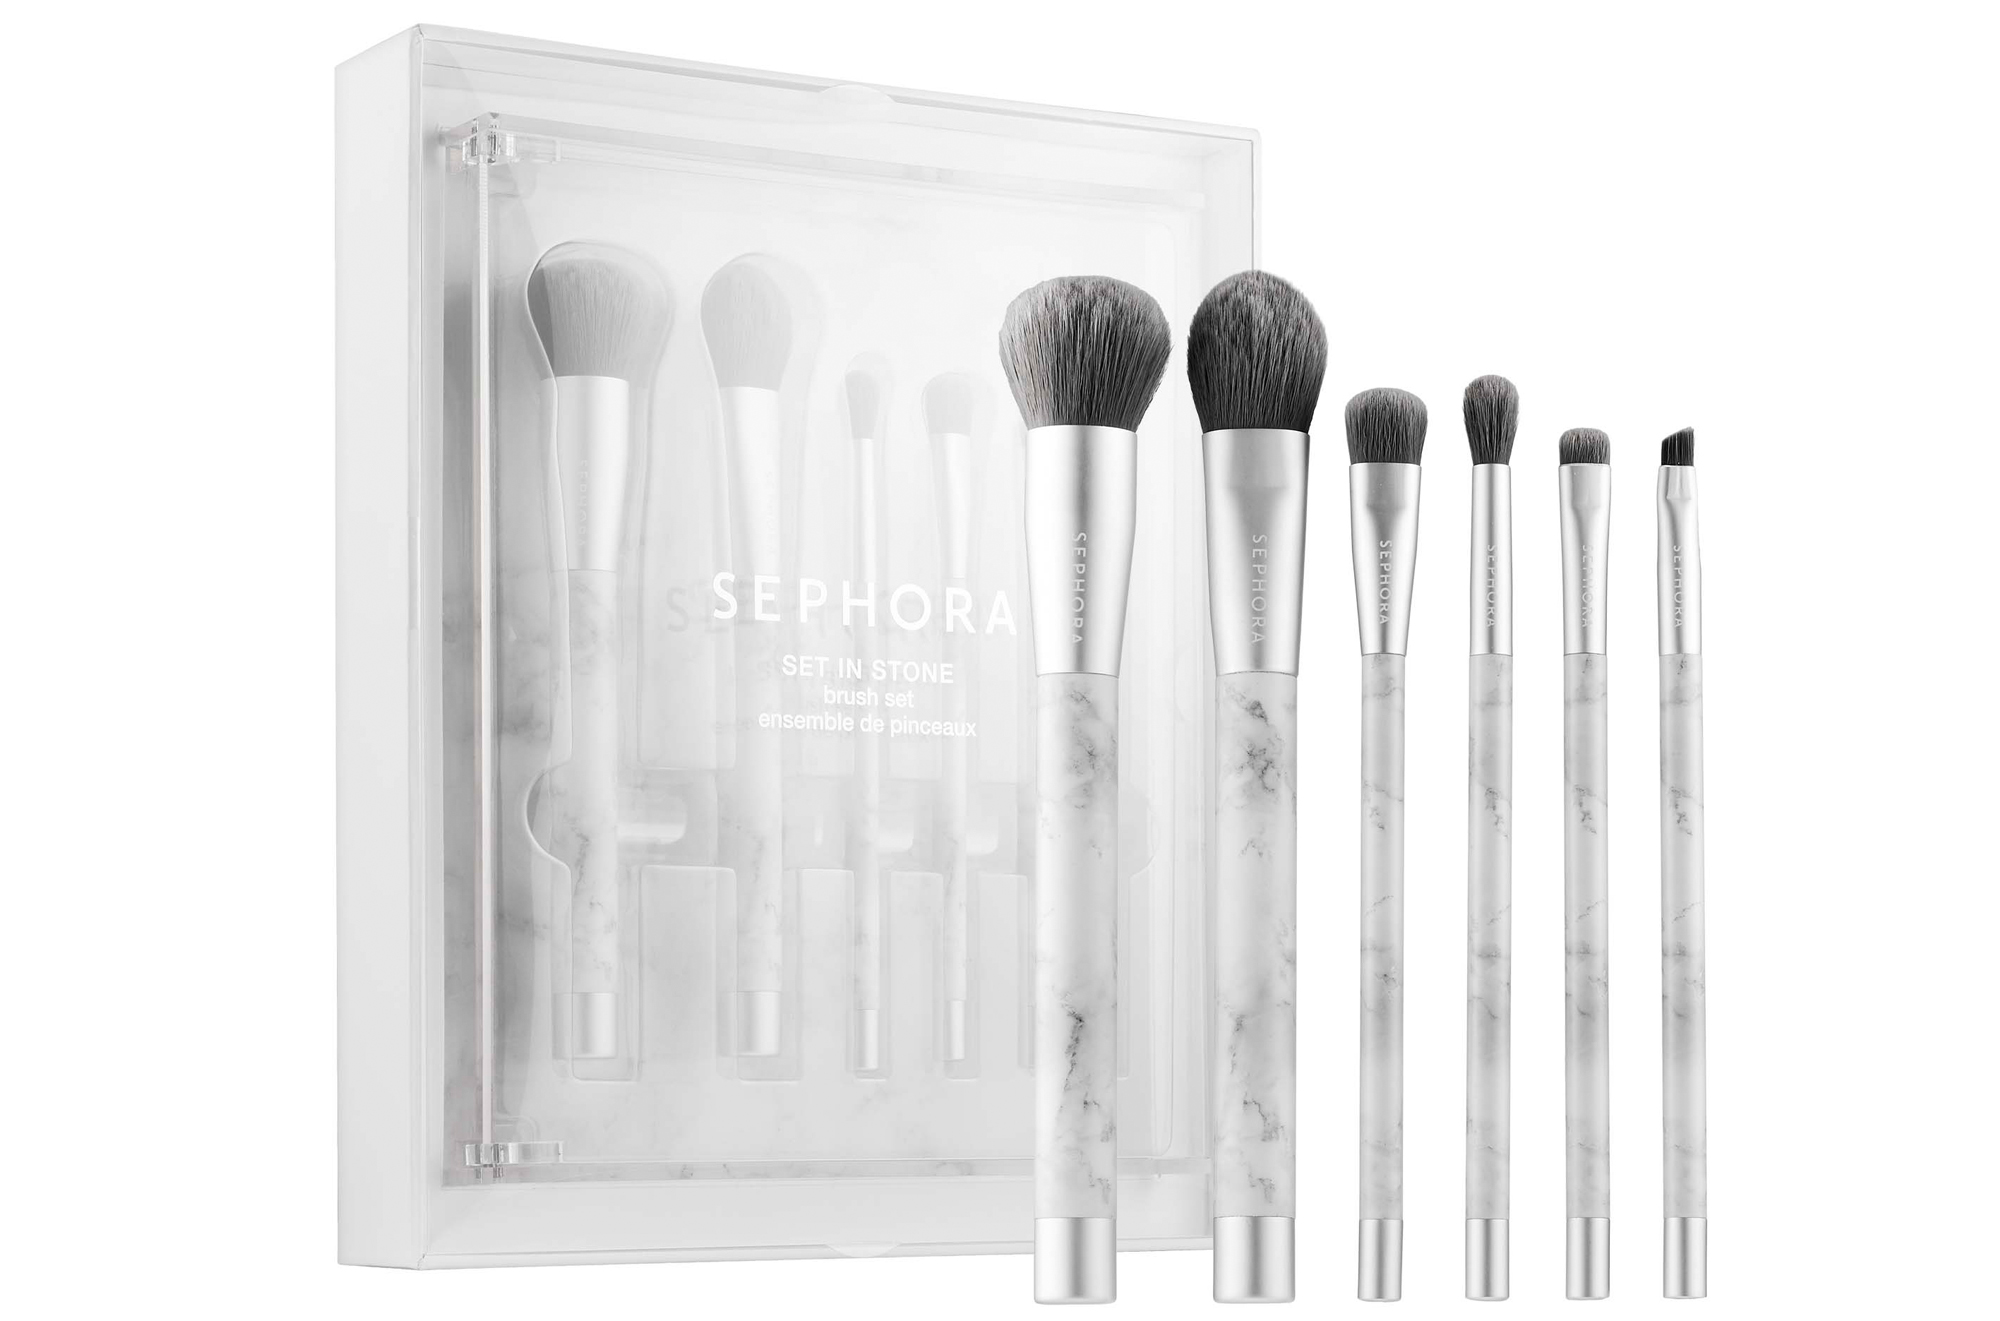 sephora set in stone brush set